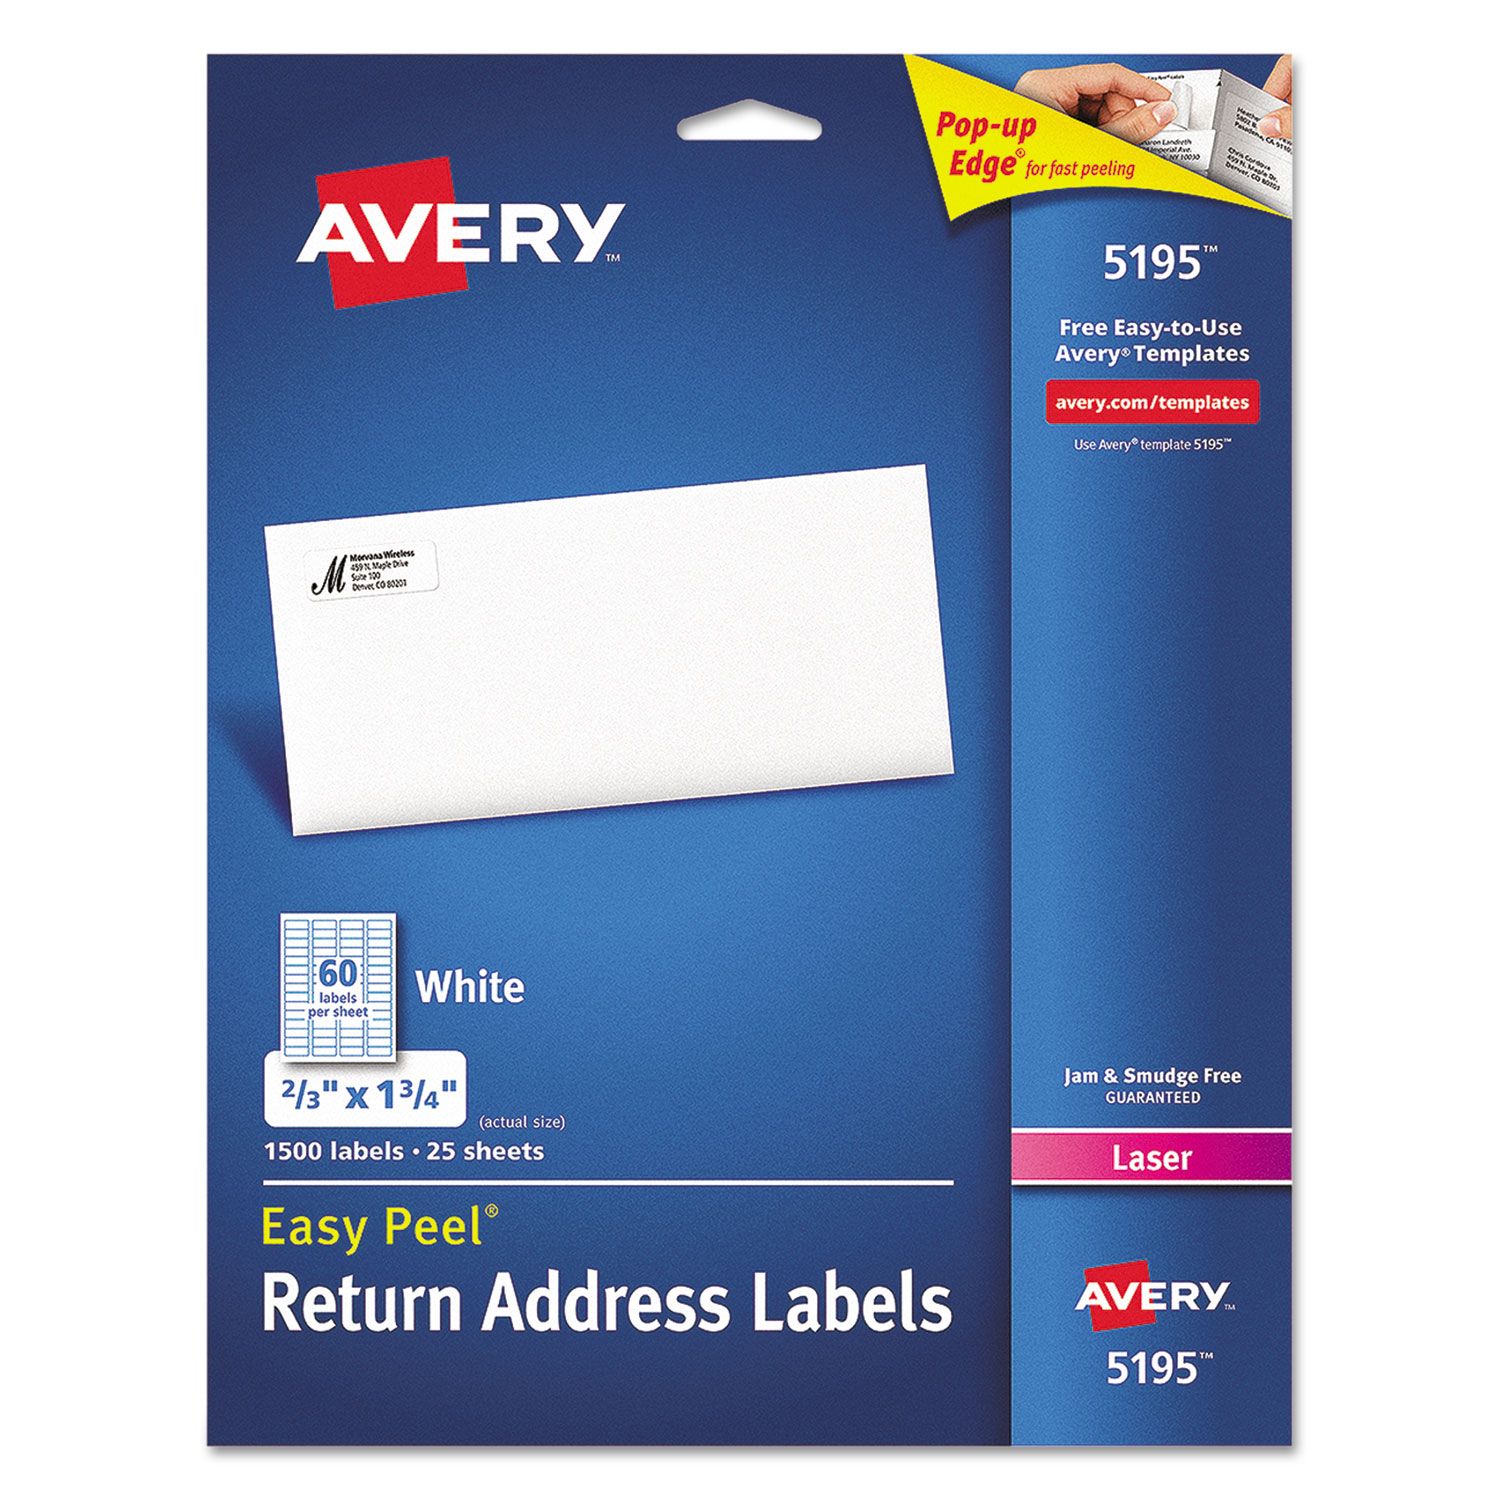 Avery Labels Avery Label Templates Walmartcom - 30 labels per sheet template